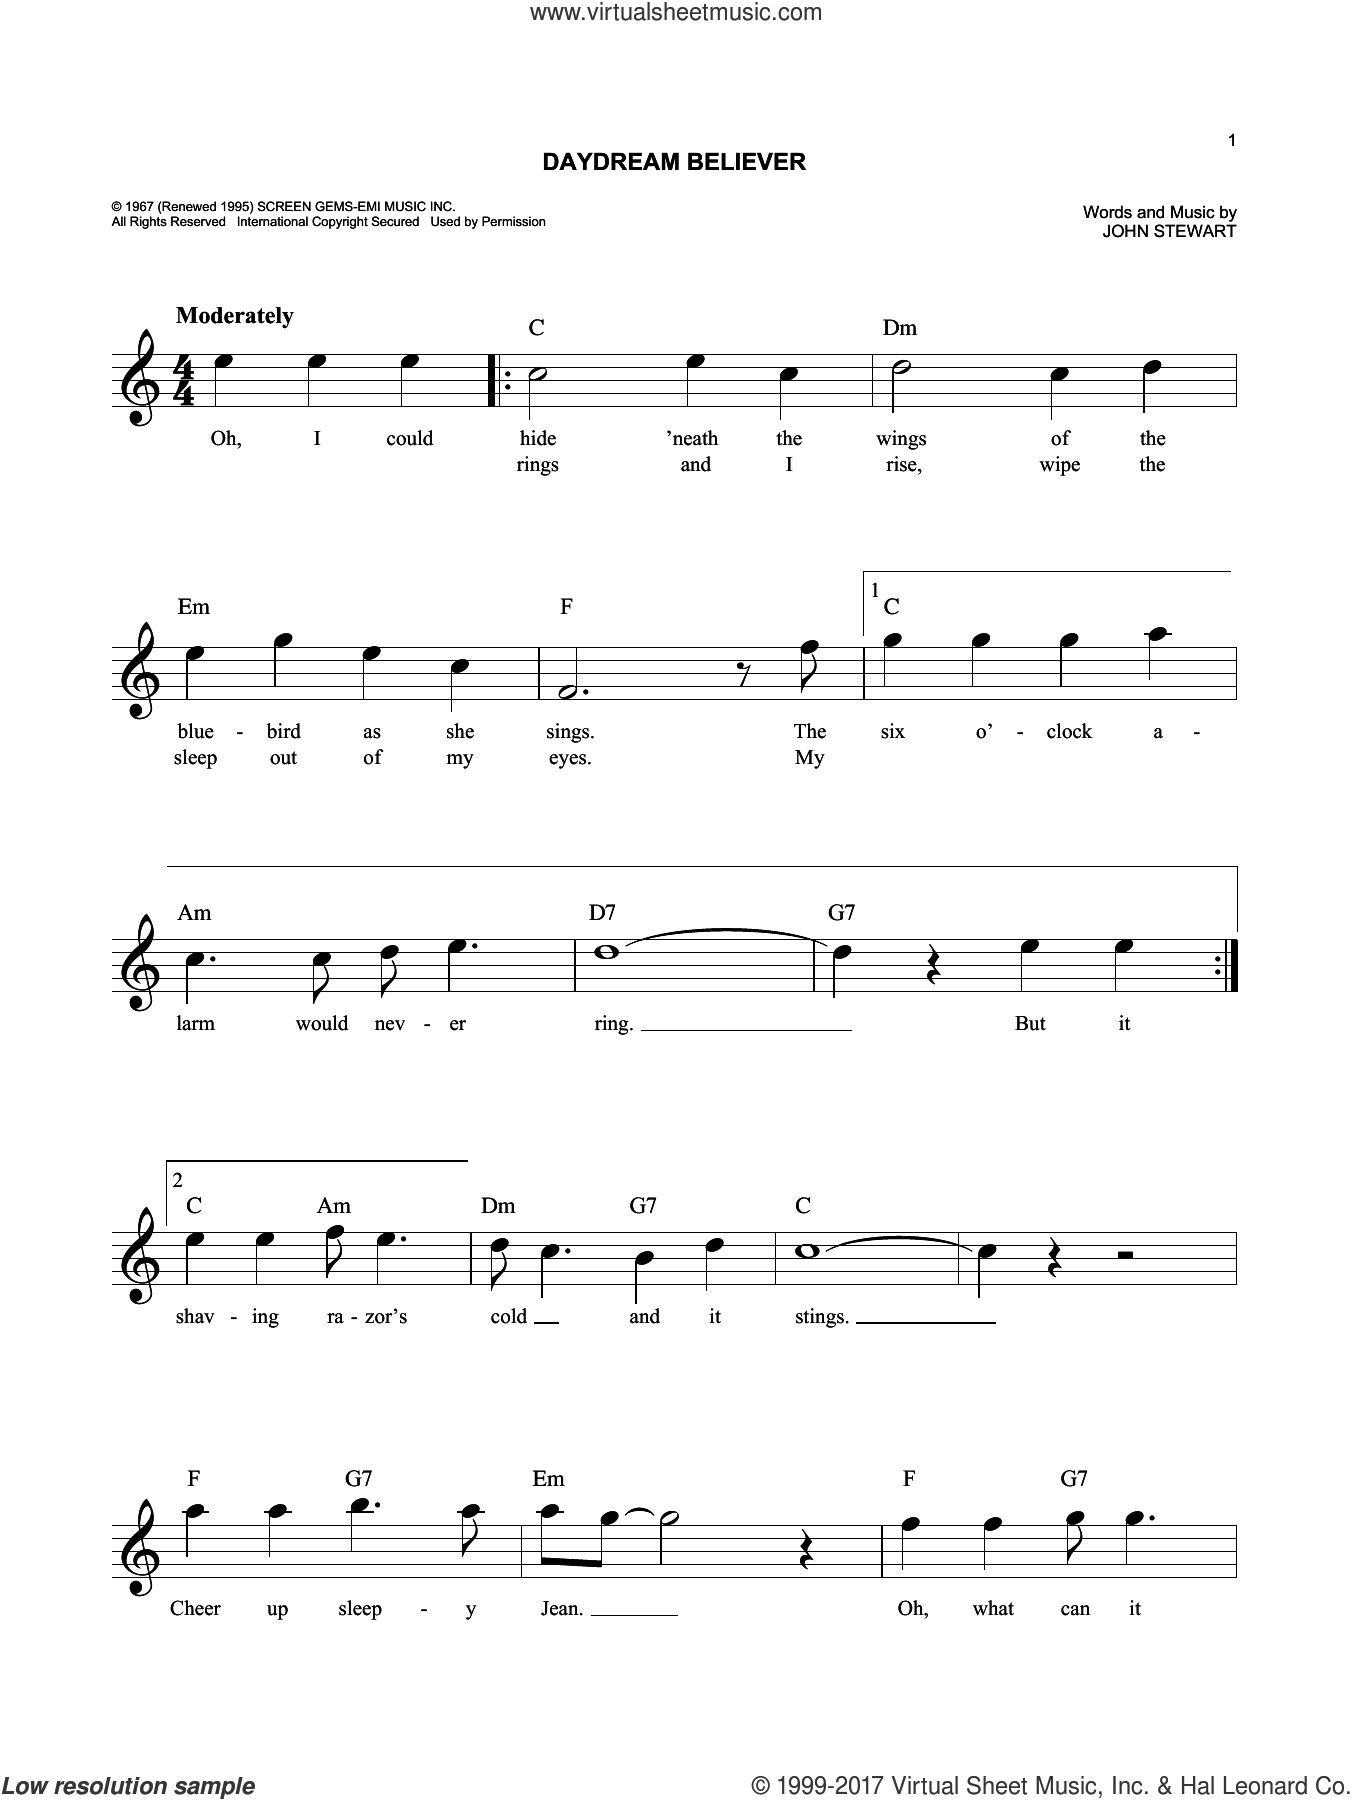 Daydream Believer sheet music for voice and other instruments (fake book) by The Monkees and John Stewart, intermediate skill level